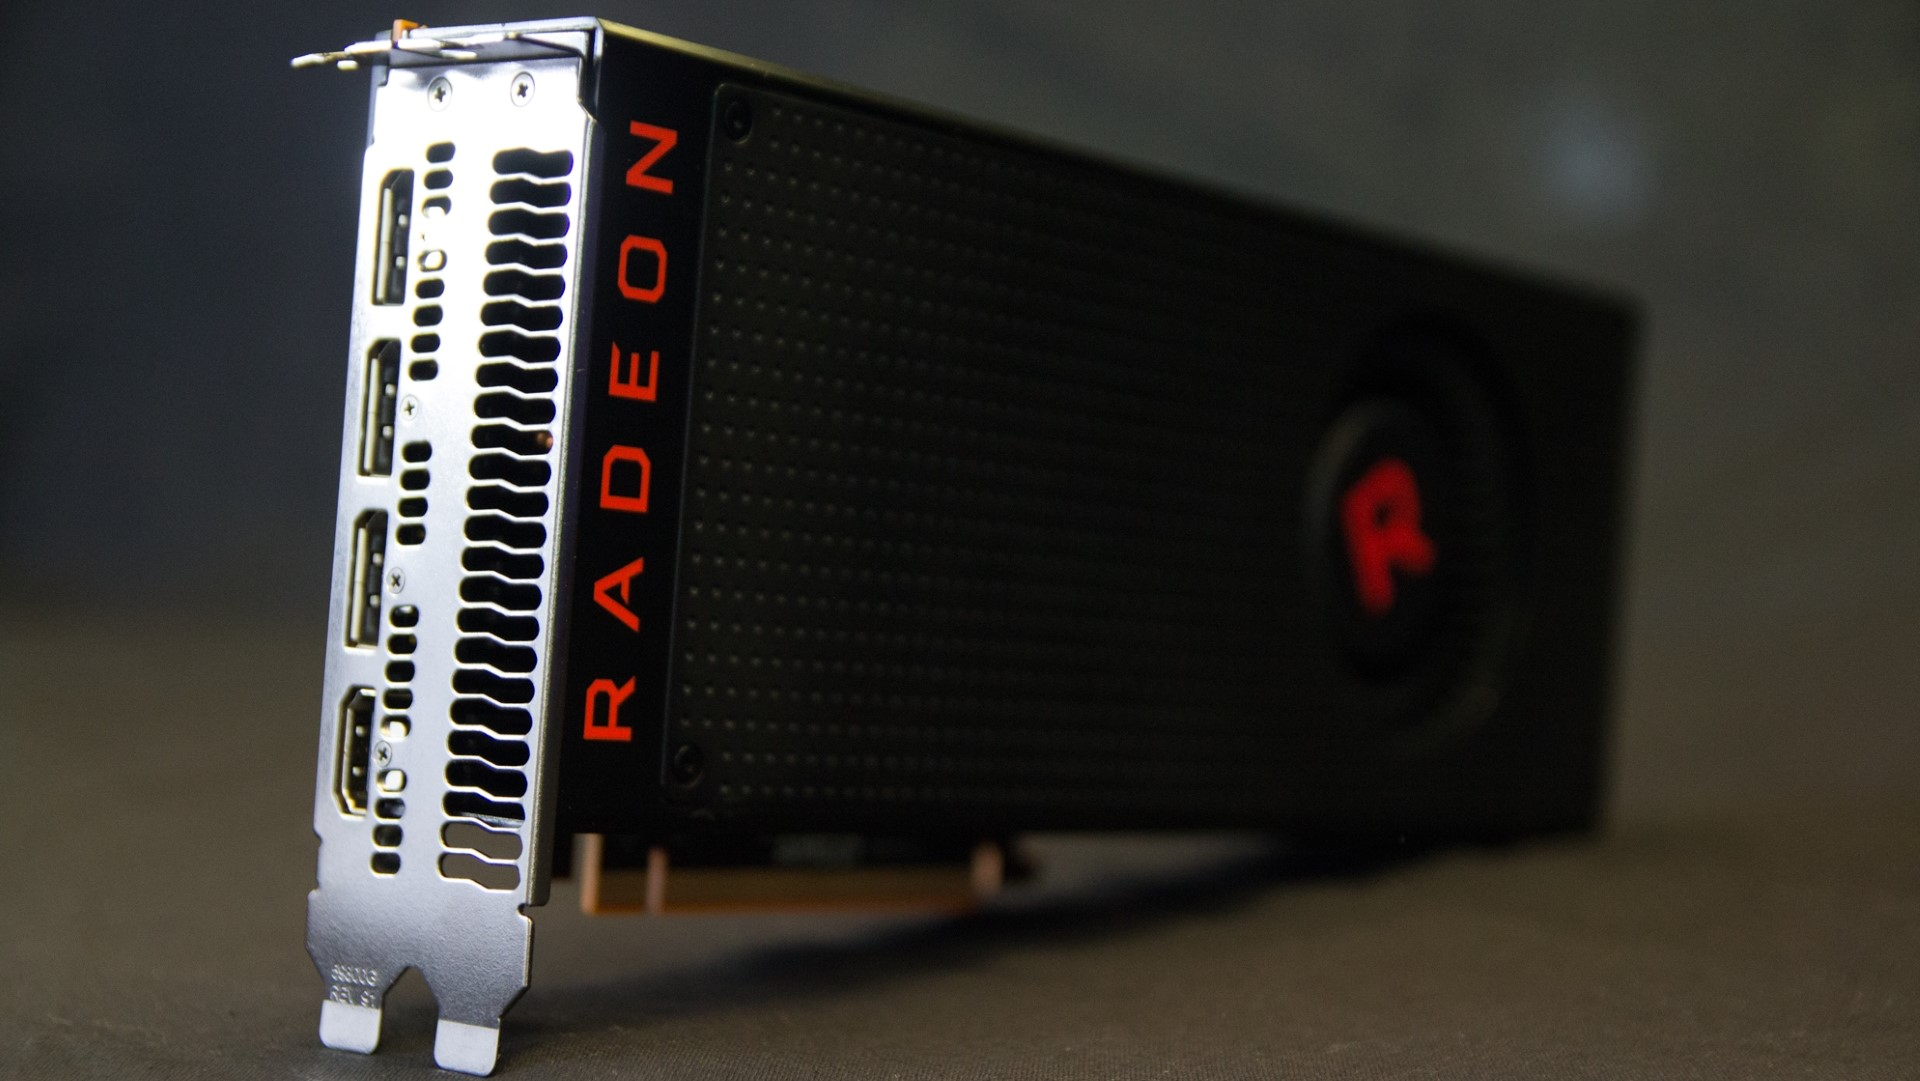 AMD RX Vega 64 review: a high-end GPU waiting on a future its tech